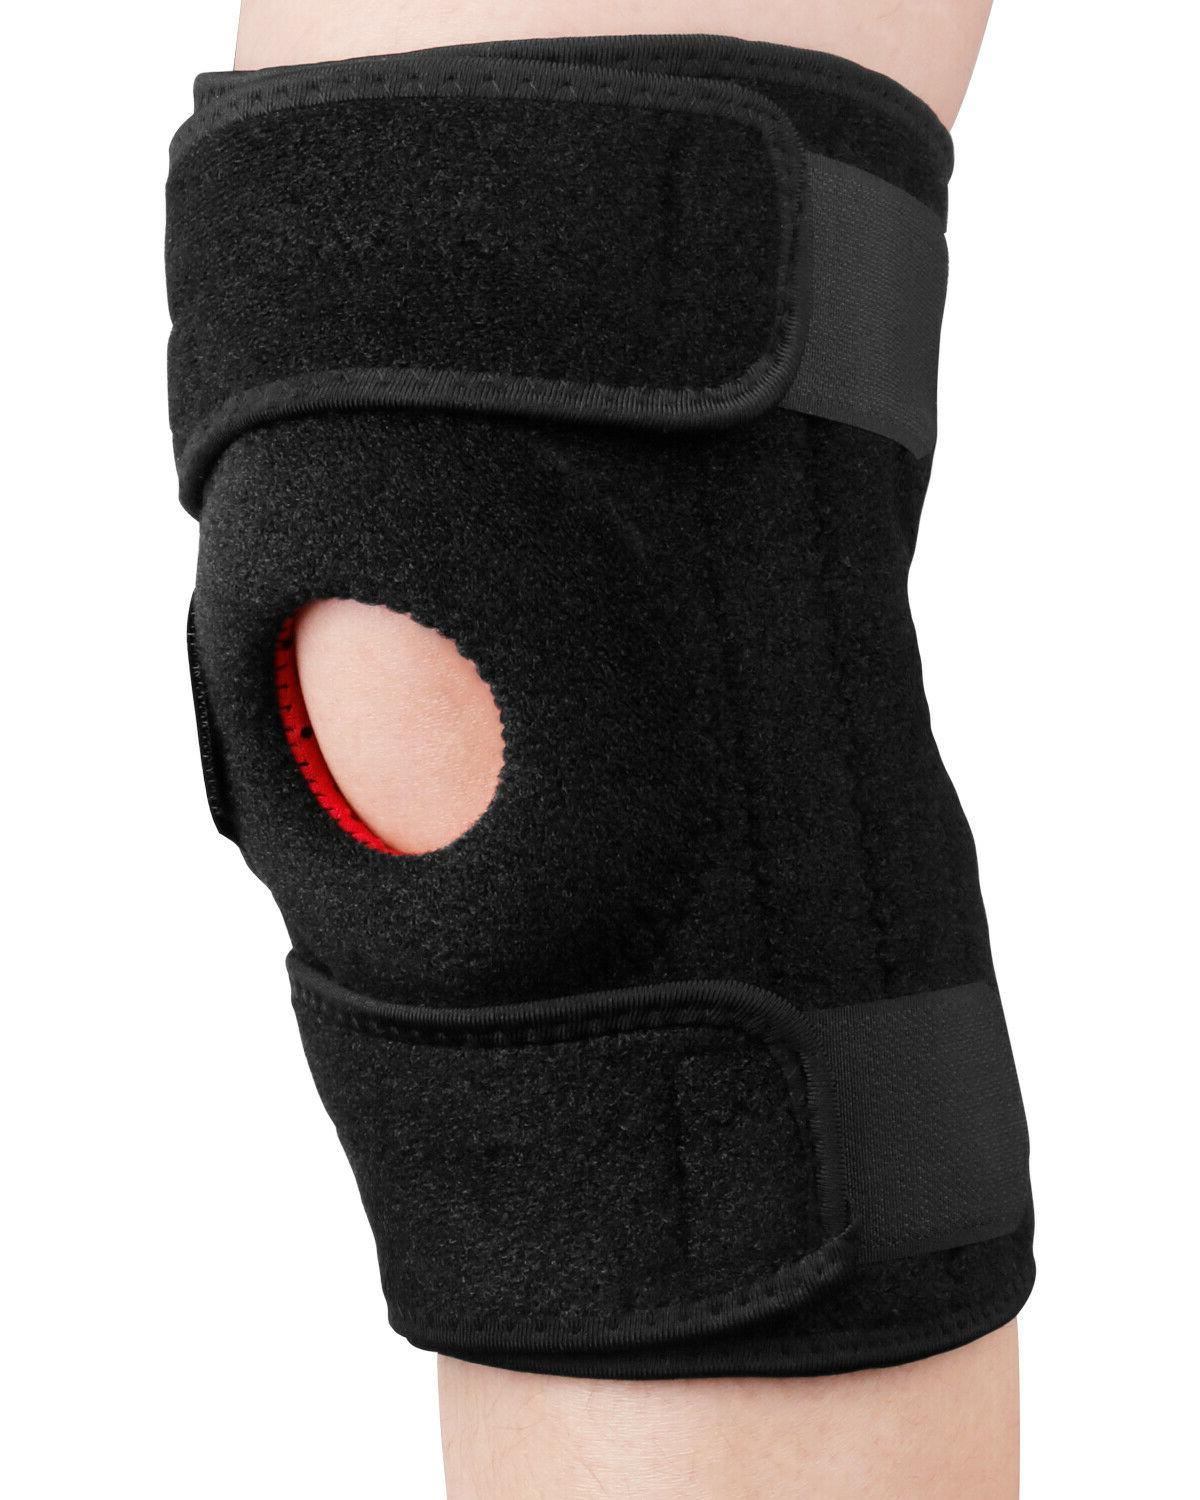 Knee Support Sleeve Leg For